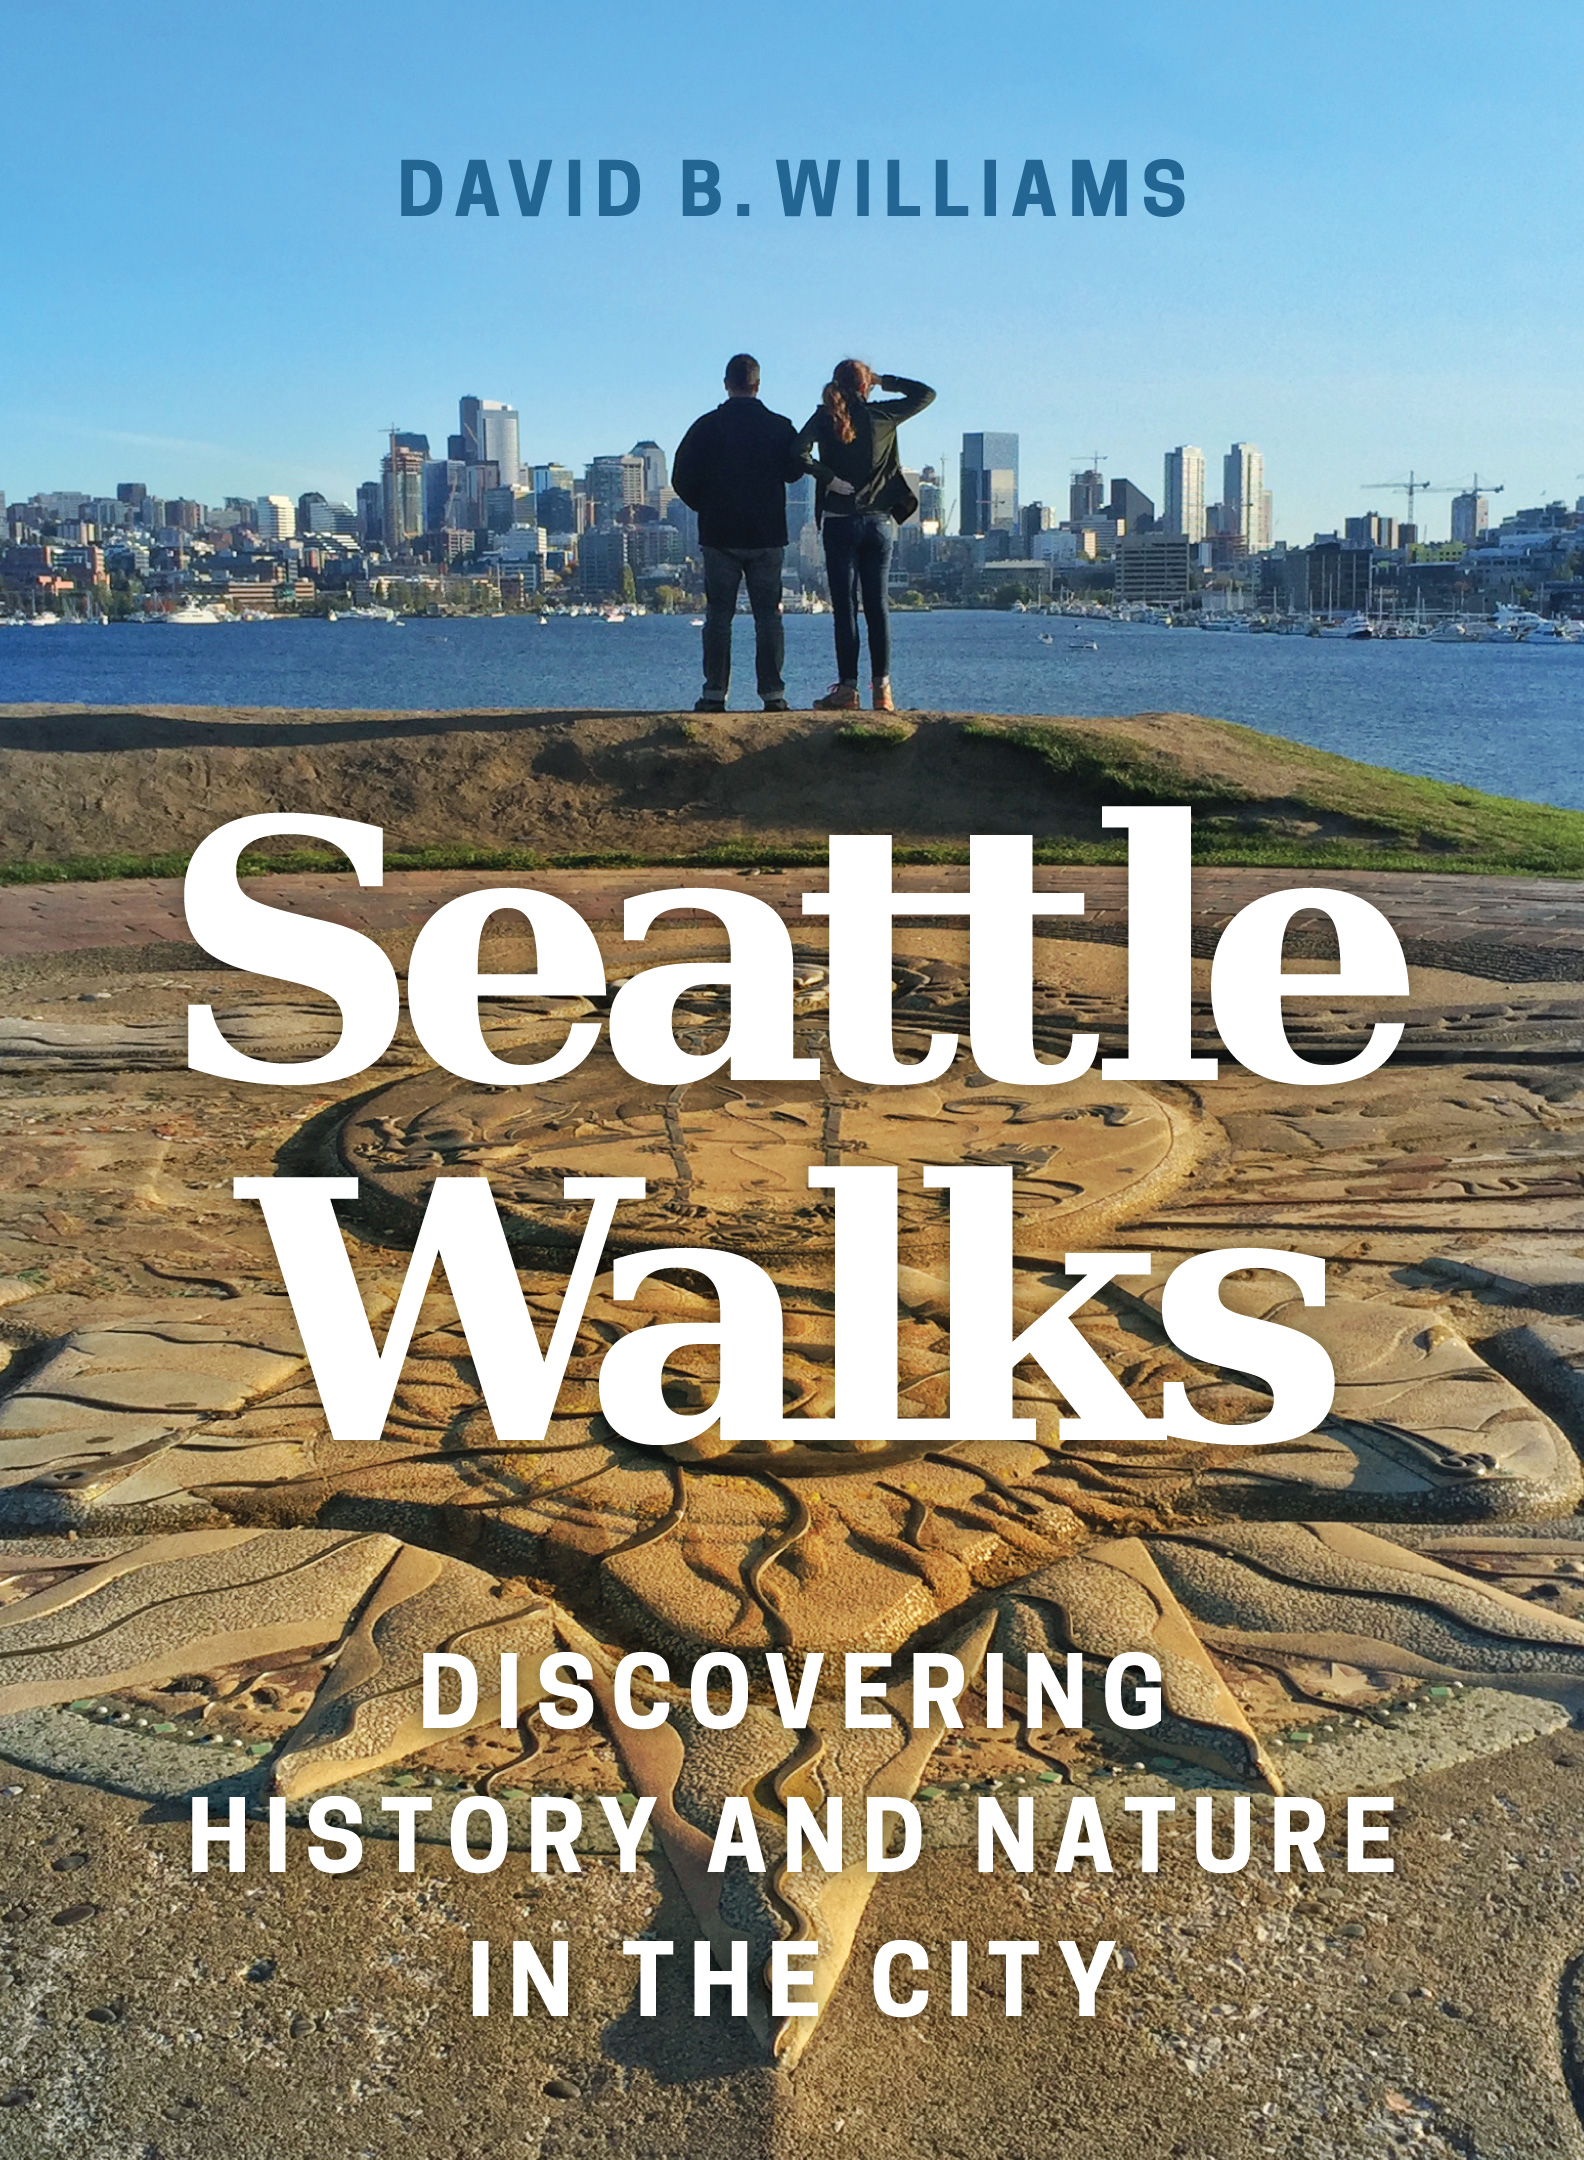 "#3. Seattle Walks by David B. Williams. ""In Seattle Walks, David B. Williams weaves together the history, natural history, and architecture of Seattle to paint a complex, nuanced, and fascinating story."" www.bookstore.washington.edu (Image: University of Washington Press)"